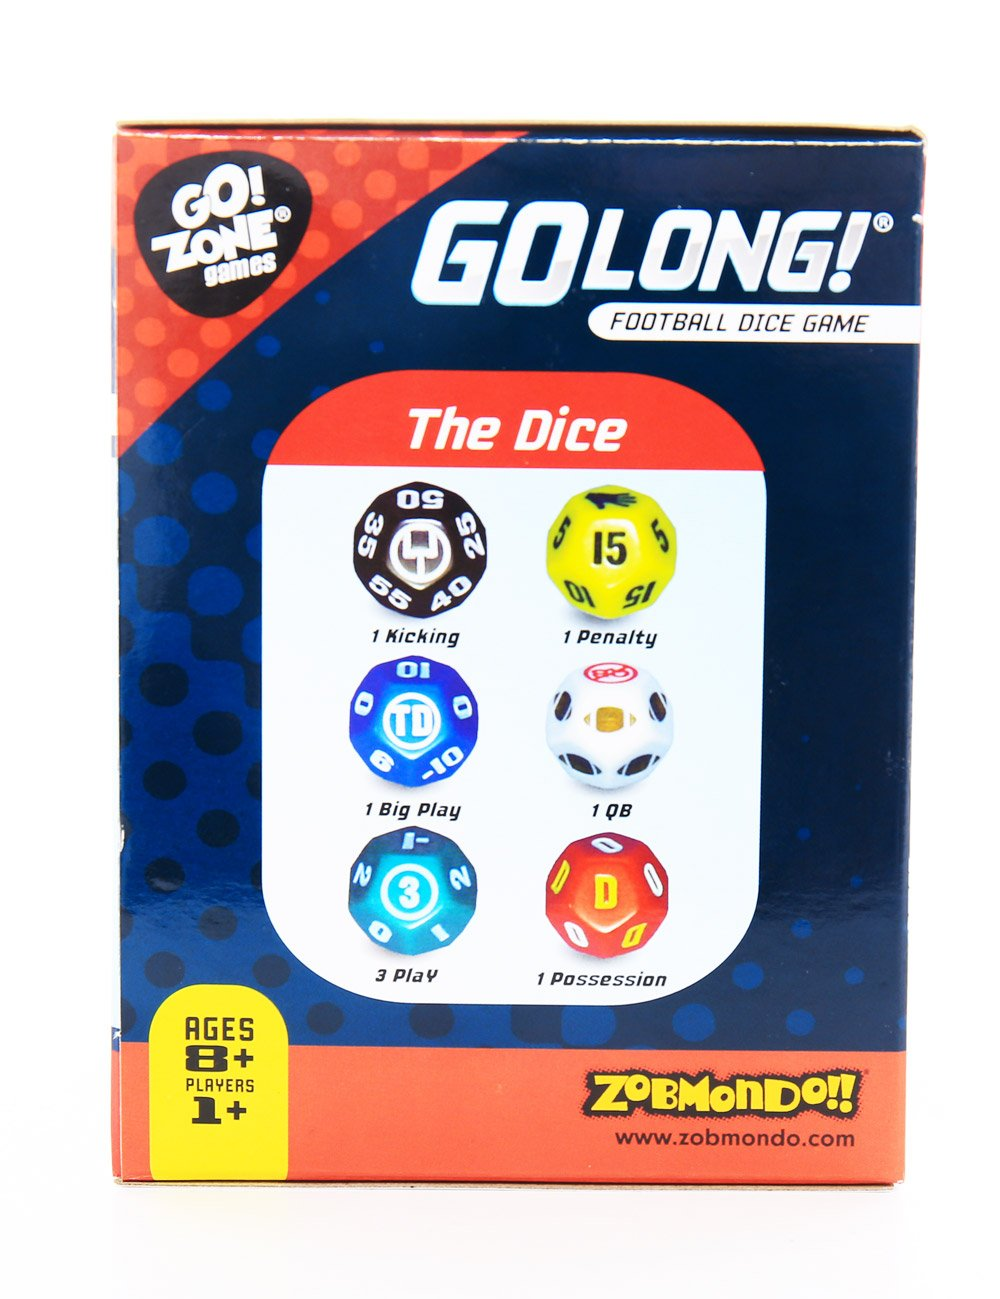 Zobmondo!! Award winning Dice Game, GoLong! A Football Dice Game - Super Fun Game - Portable, Playing Dice : Perfect For - Travel, Home, Parties, Gifts, Stocking Stuffers by Zobmondo!! (Image #6)